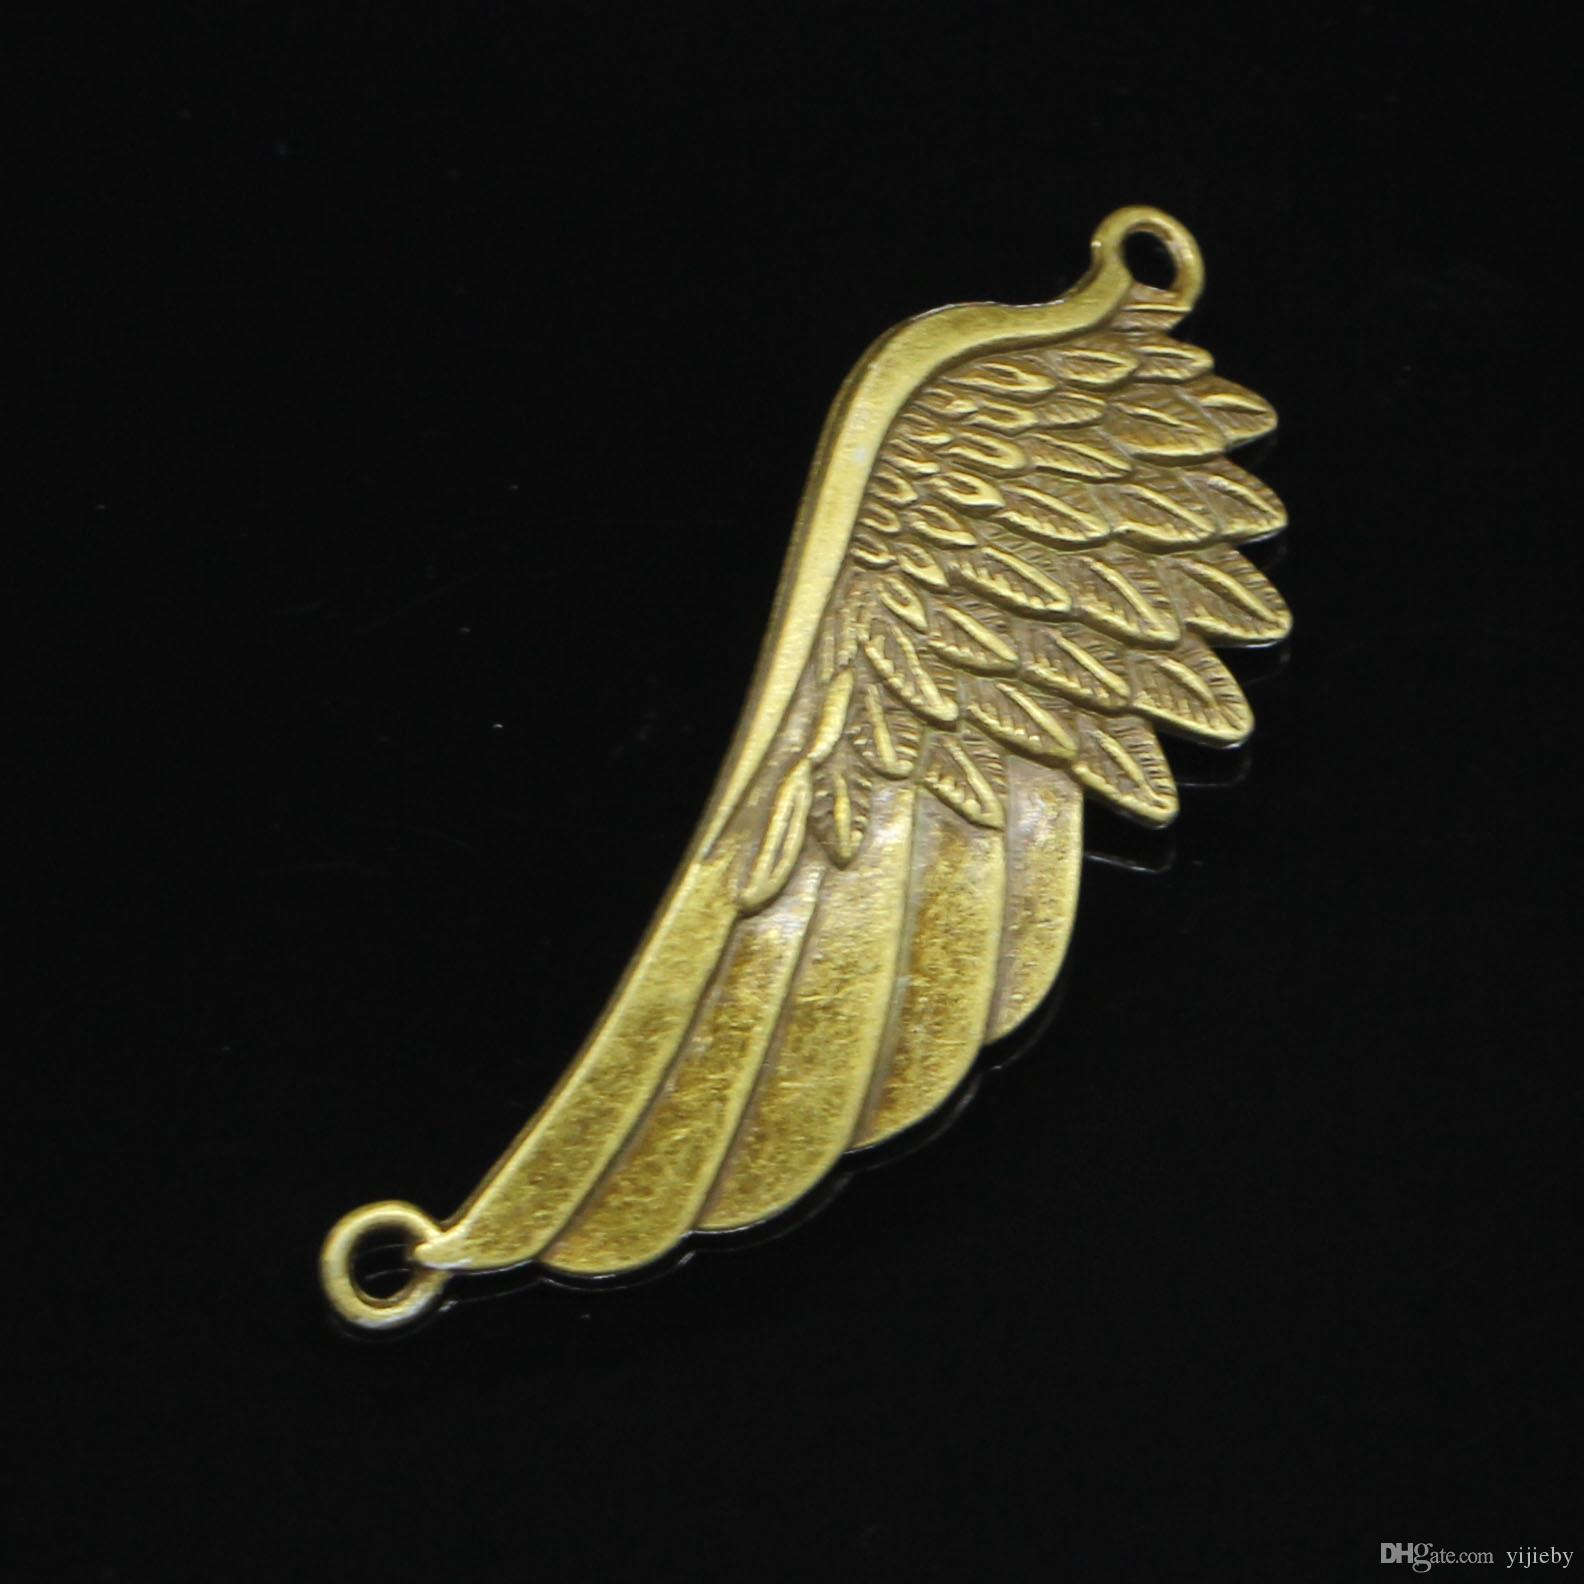 15pcs Antique Bronze Plated angel wings Charms Pendant fit Bracelet Necklace Jewelry DIY Making Accessories 60*22mm